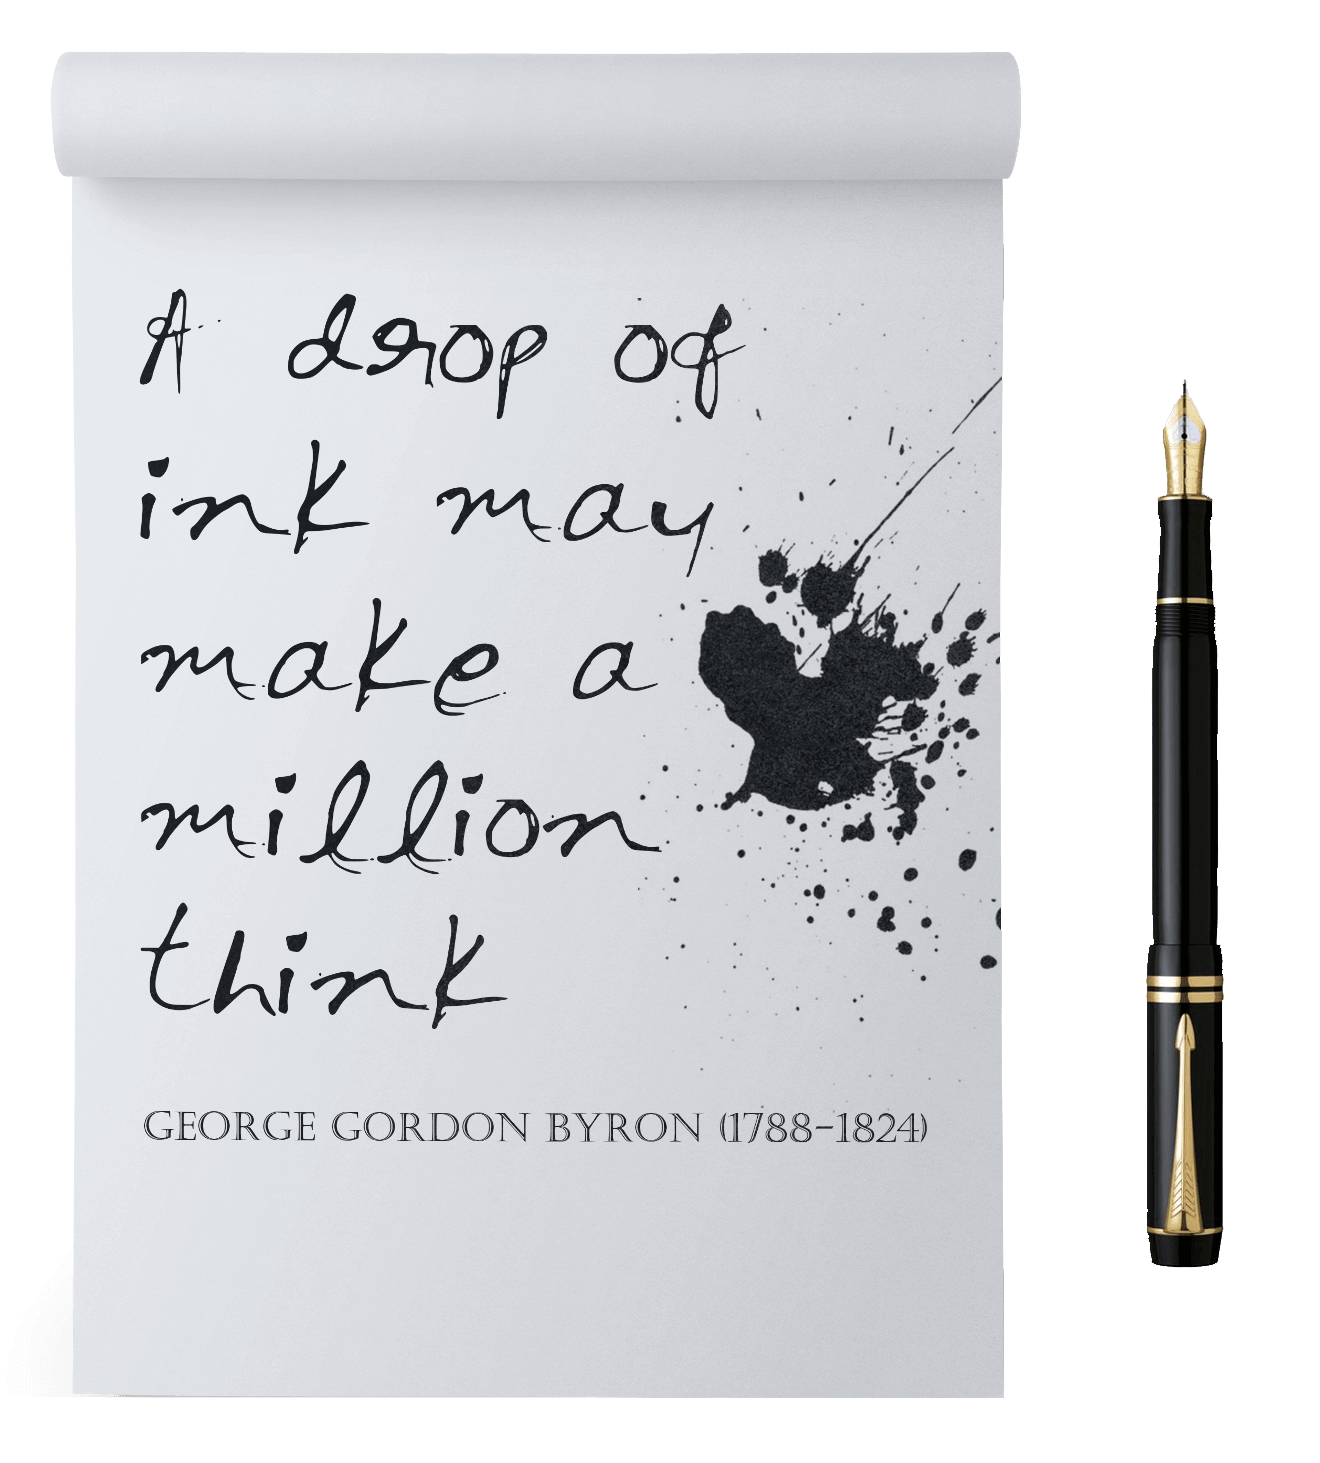 A drop of ink may make a million think. A quote by George Gordon Byron (1788 to 1824)